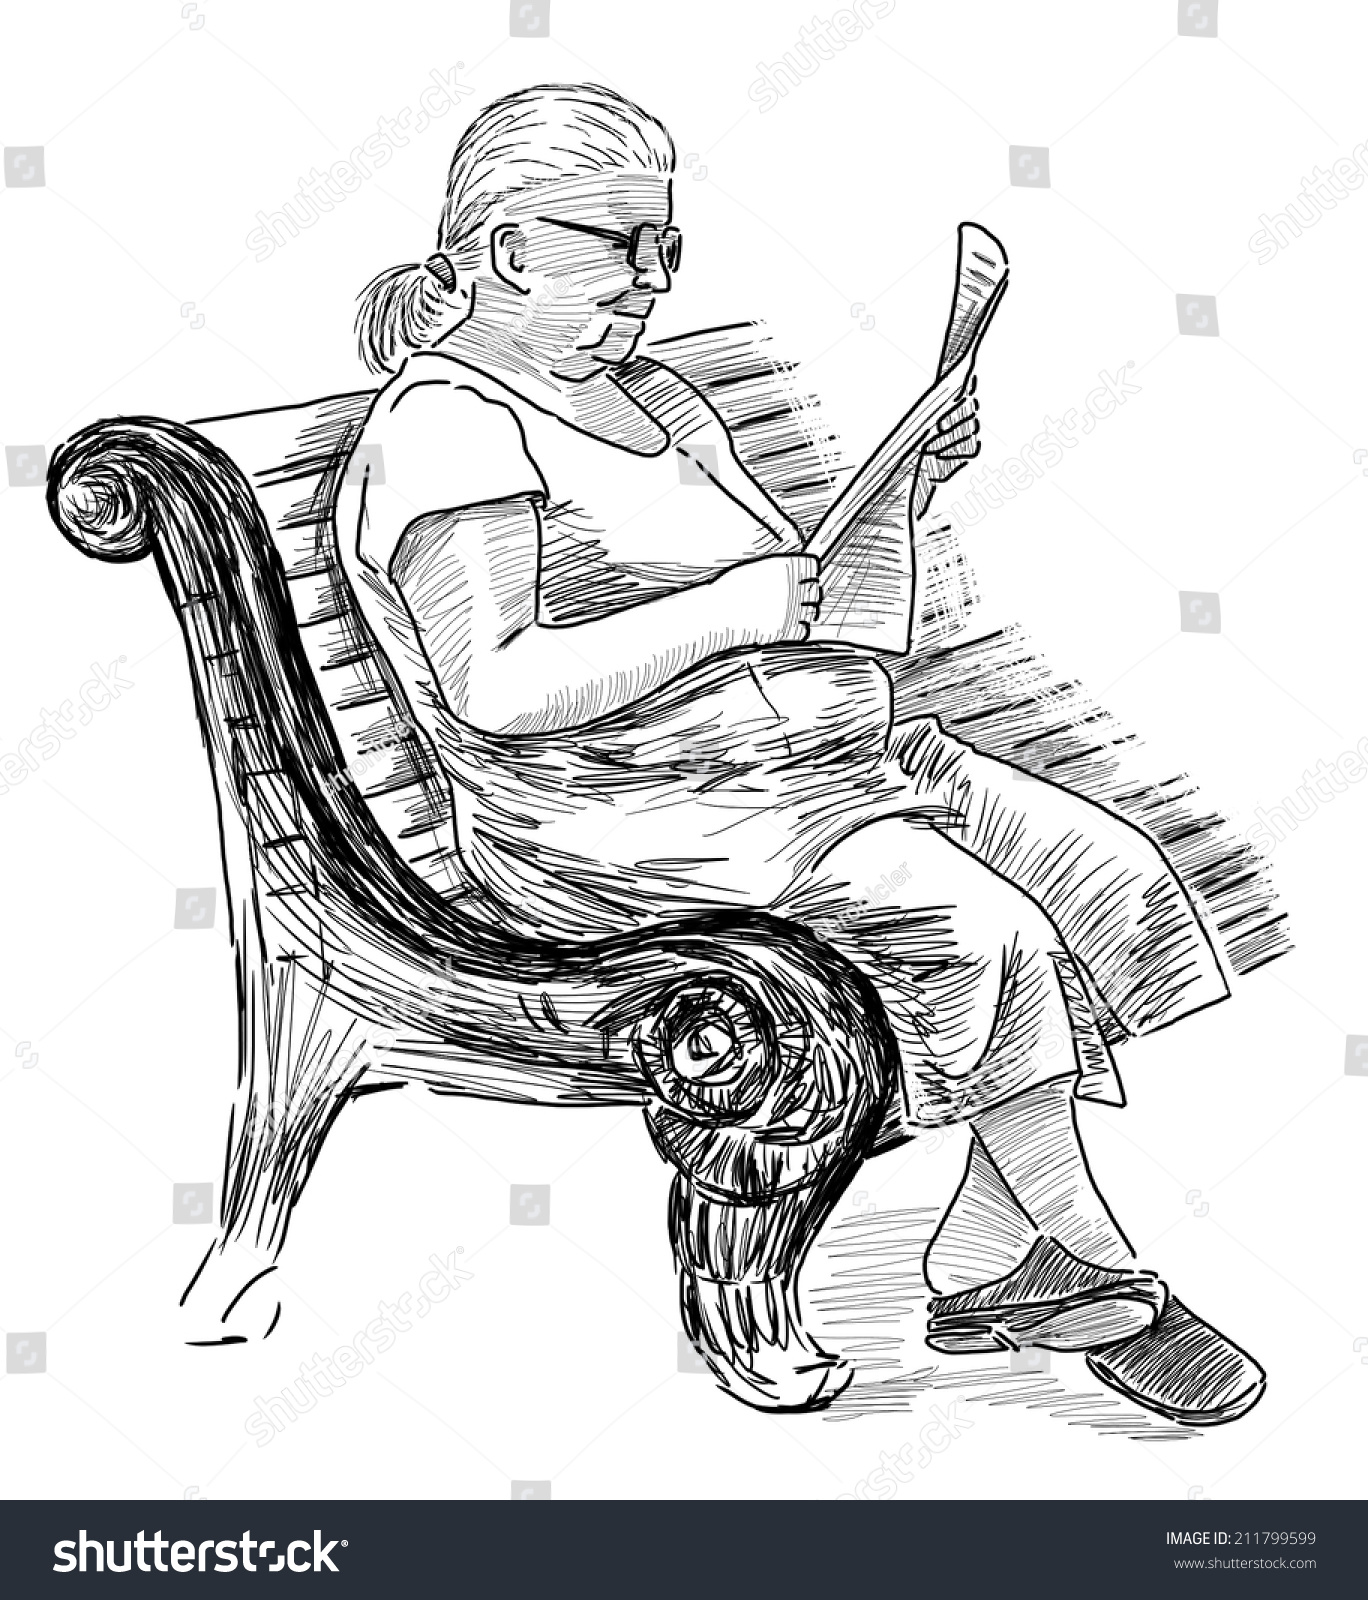 old woman reading newspaper stock illustration 211799599 - shutterstock